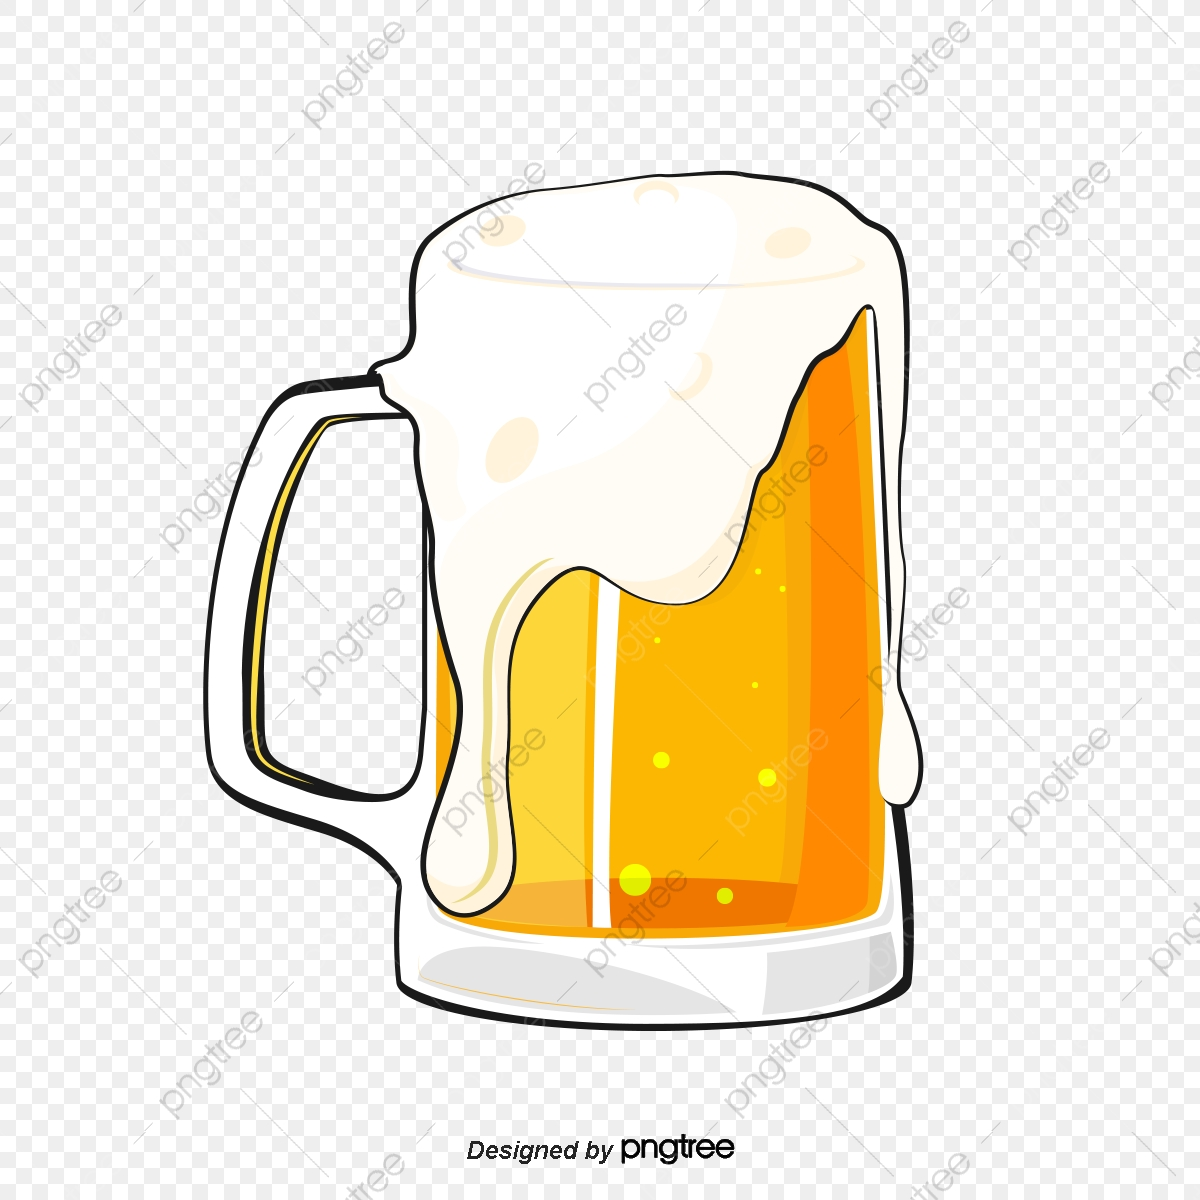 hight resolution of commercial use resource upgrade to premium plan and get license authorization upgradenow beer mug beer clipart